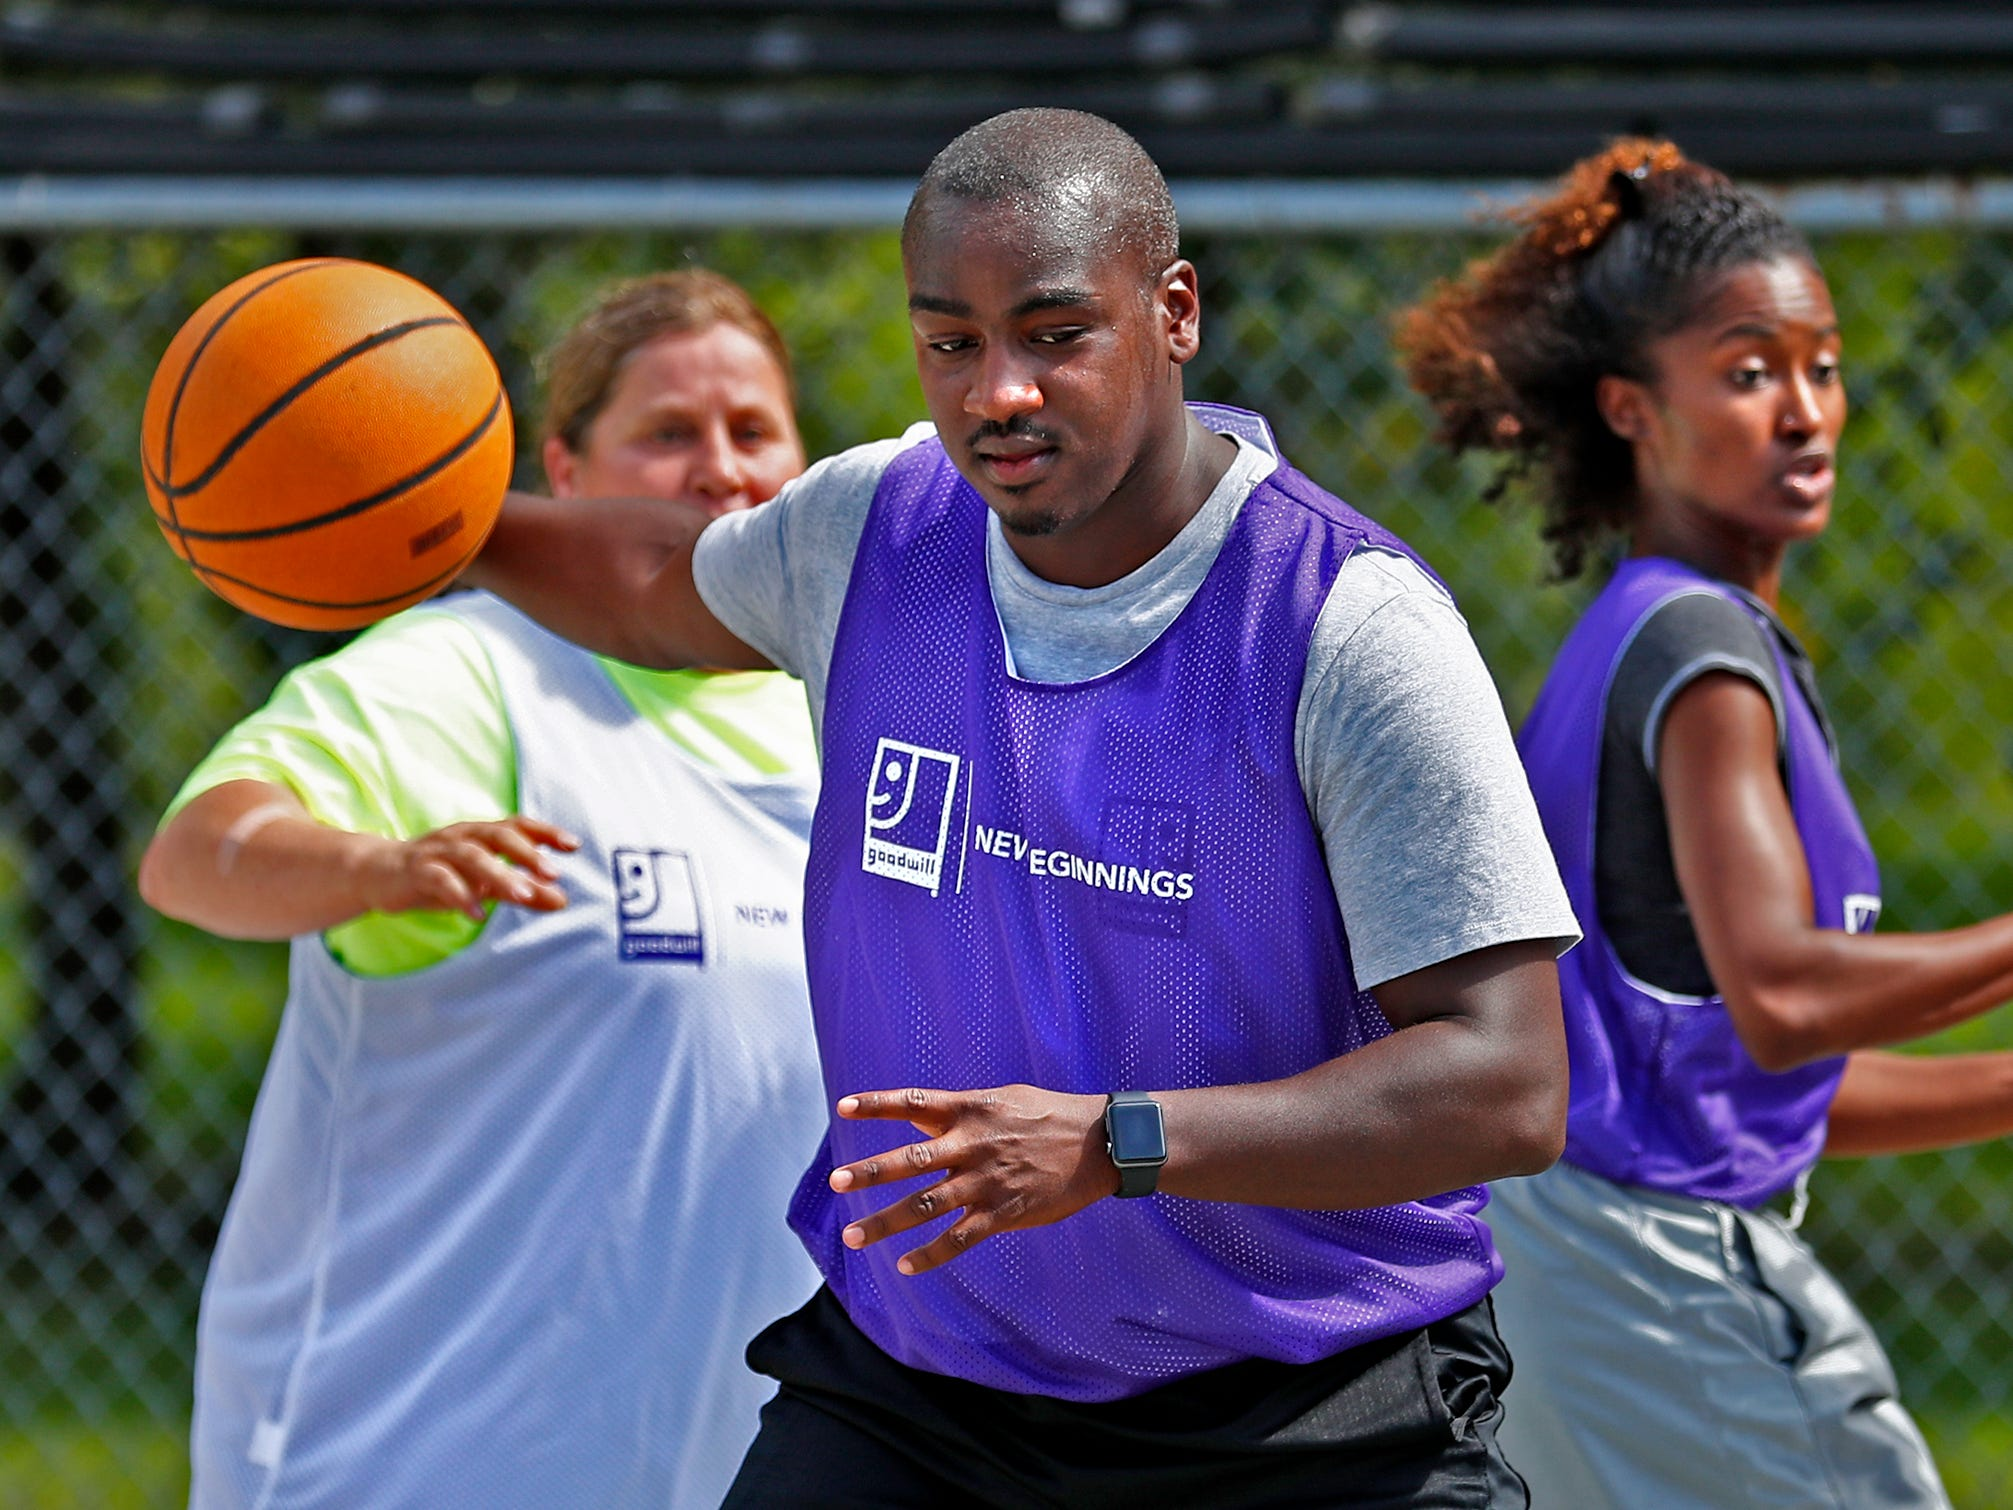 Kevin Tichenor, with Family Community Partners, runs the ball past Tonya Surber, left, Alexaundria Monroe, both with Marion County Probations, during a basketball game at Goodwill Commercial Services, Wednesday, Sept. 19, 2018.  Goodwill Industries of Central Indiana's New Beginnings hosted the 3-on-3 basketball tournament bringing together participants in New Beginnings, a six-month re-entry program for ex-offenders that works on job and life skills, with representatives from Goodwill, IMPD, the Mayor's office, Marion County Probation department and other services.  The goal is to celebrate the New Beginnings program while breaking down re-entry barriers through basketball.